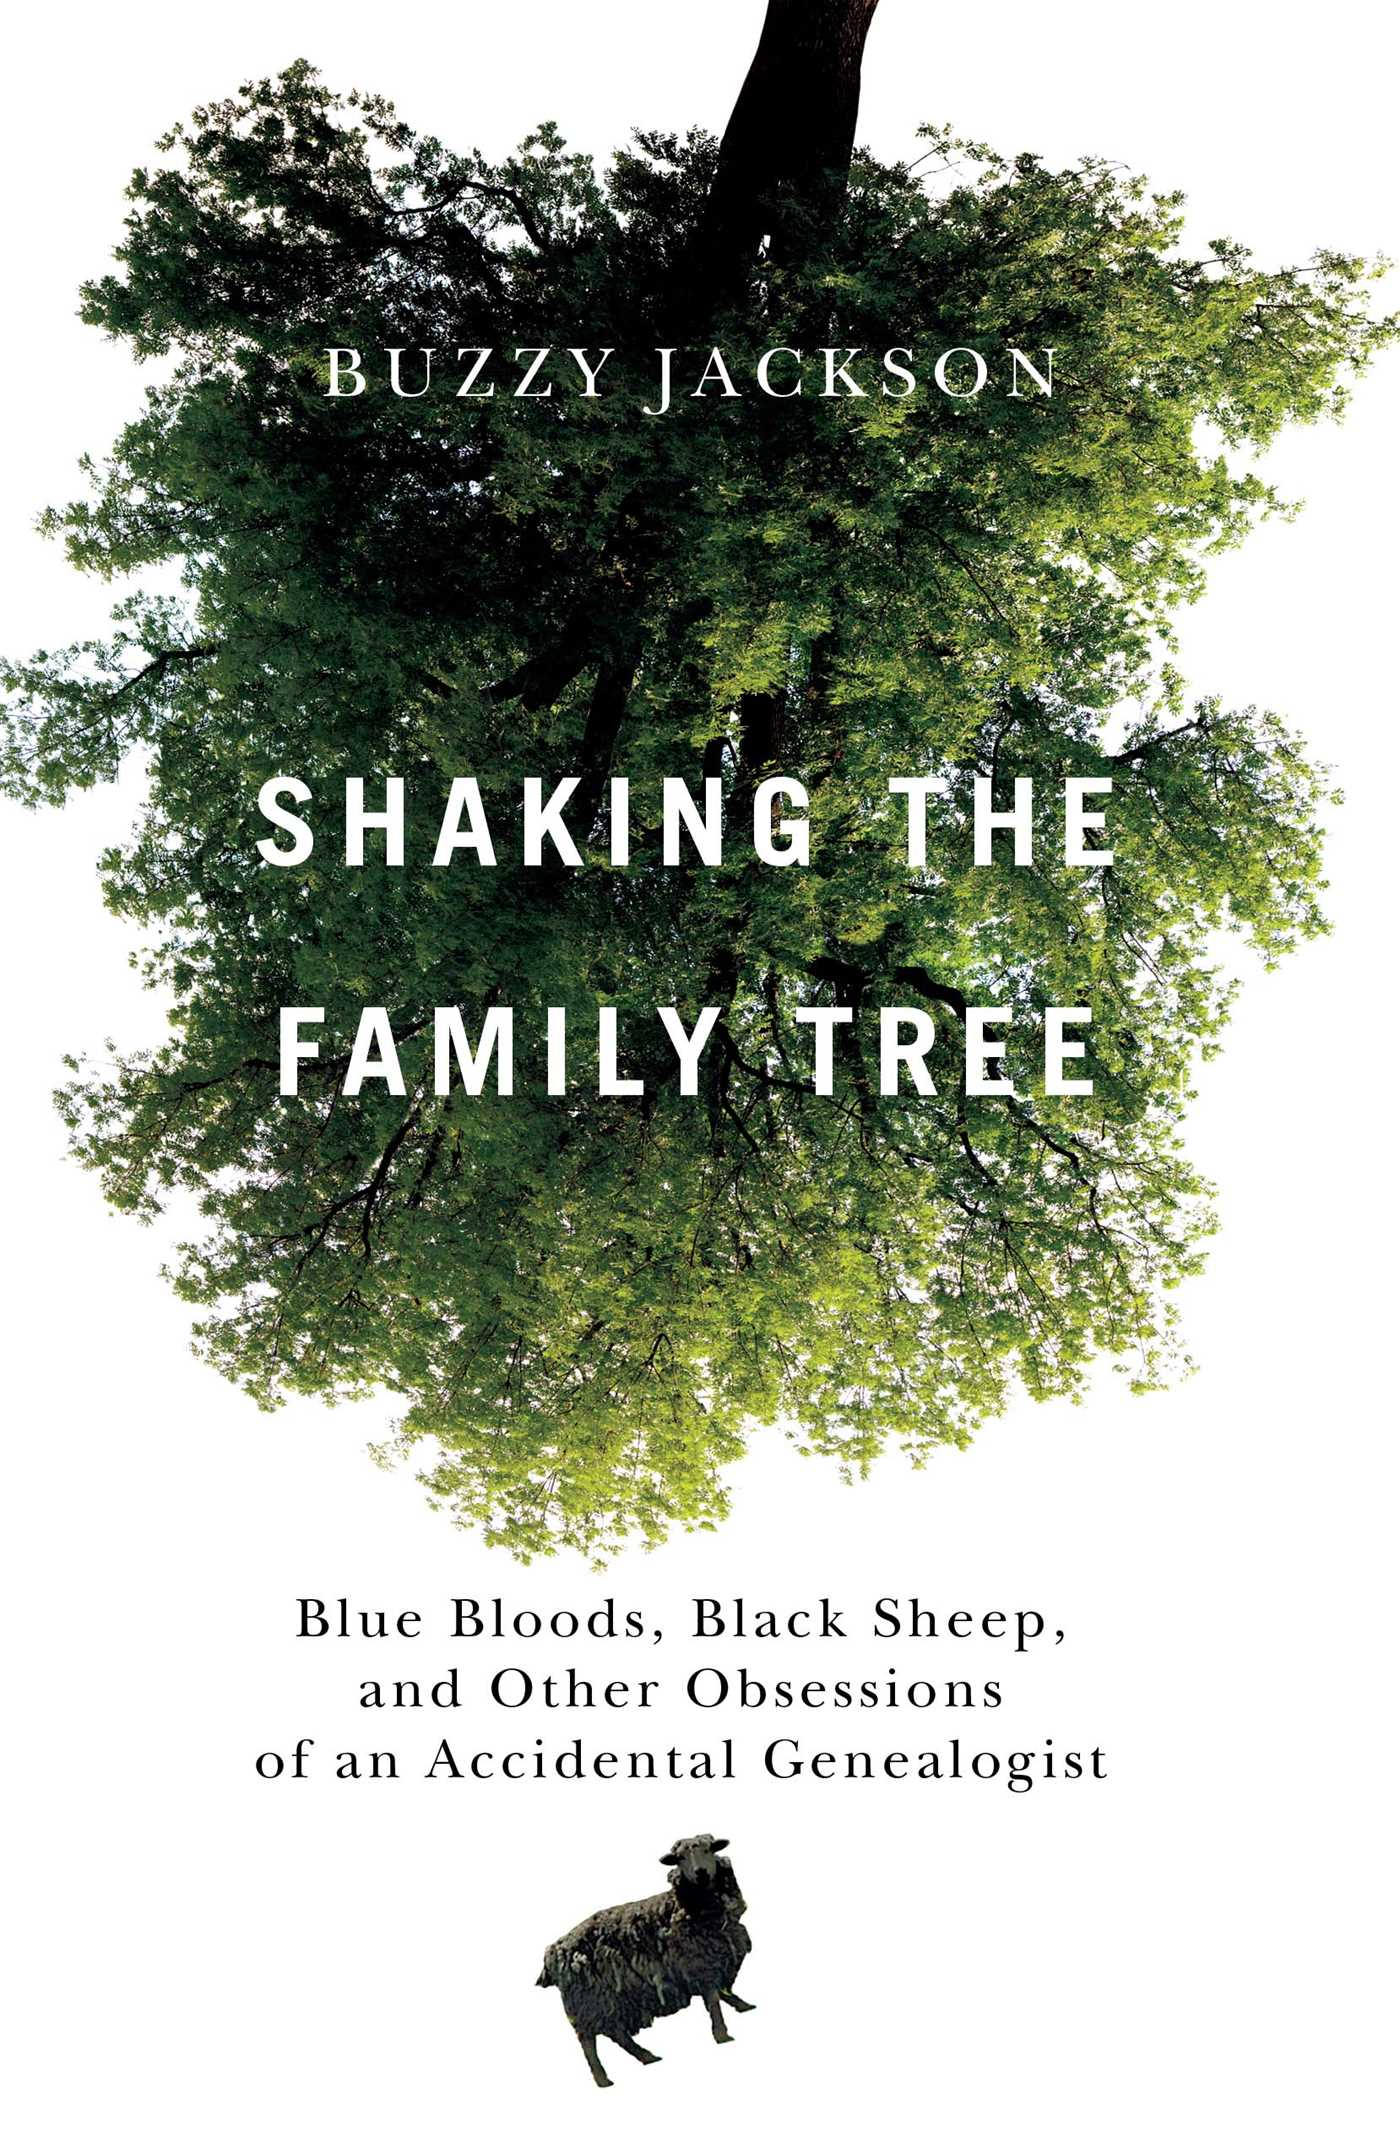 Shaking-the-family-tree-9781439112991_hr